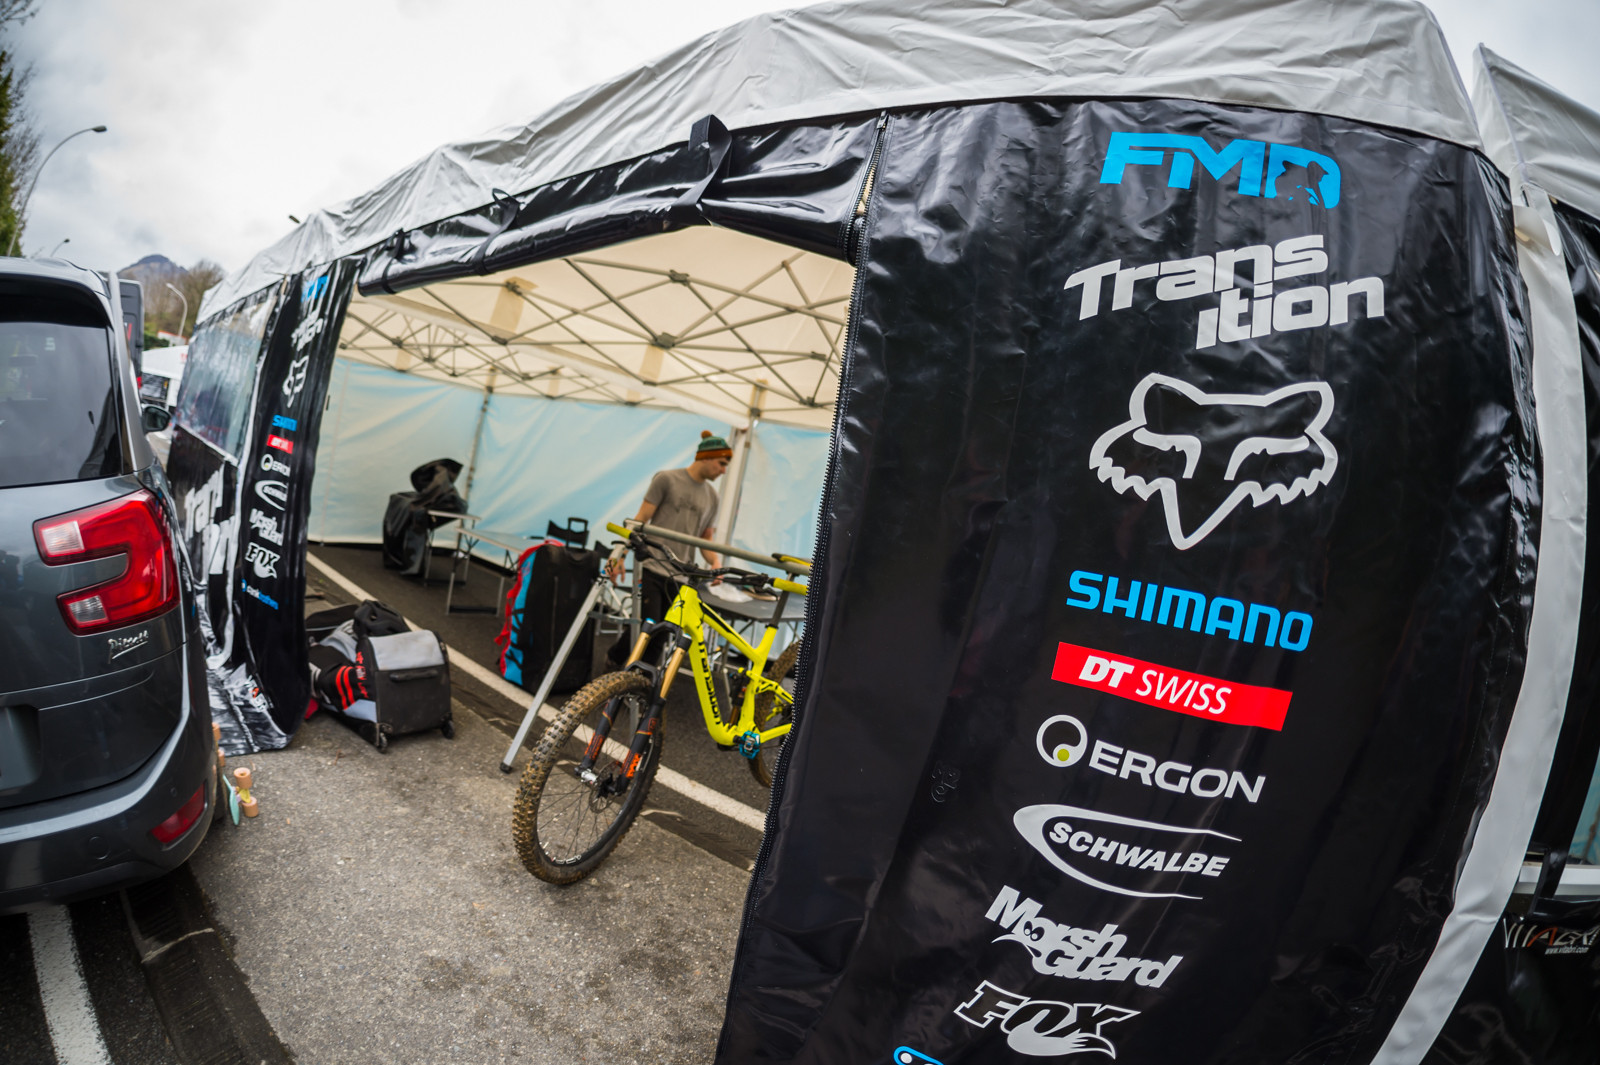 FMD on Transition - PIT BITS - 2016 Lourdes World Cup Downhill - Mountain Biking Pictures - Vital MTB